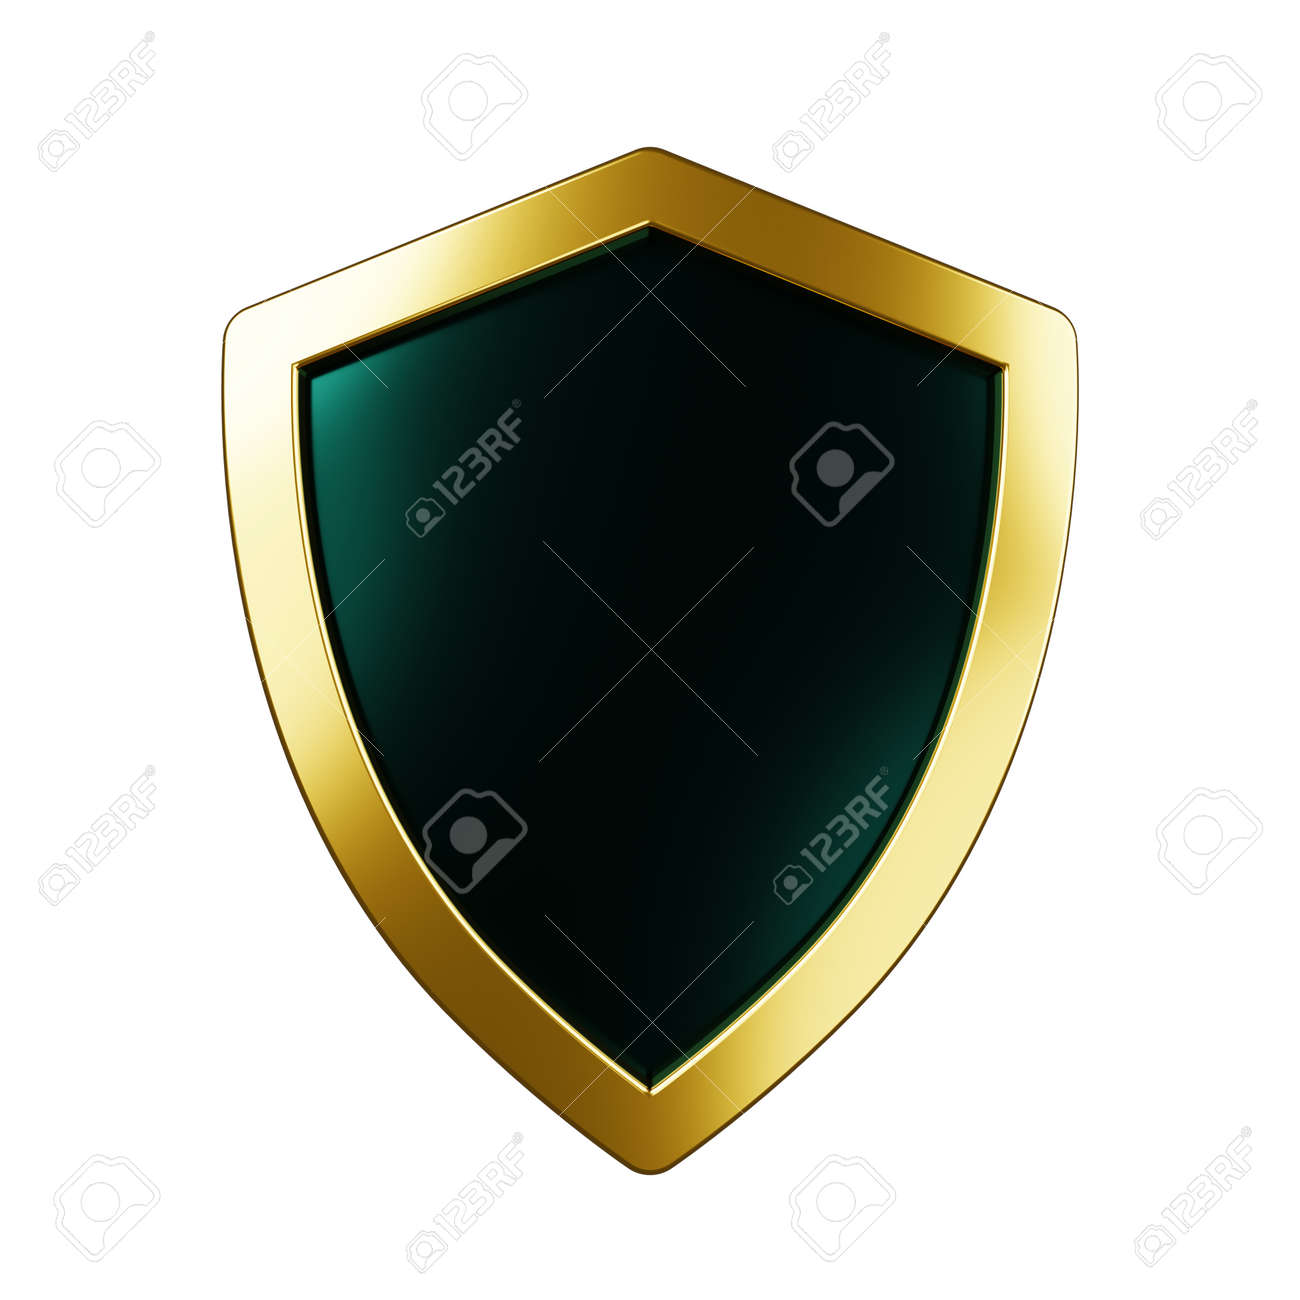 Protected guard shield concept. Safety badge color icon. Security label. Defense safeguard sign. 3d illustration - 173375729